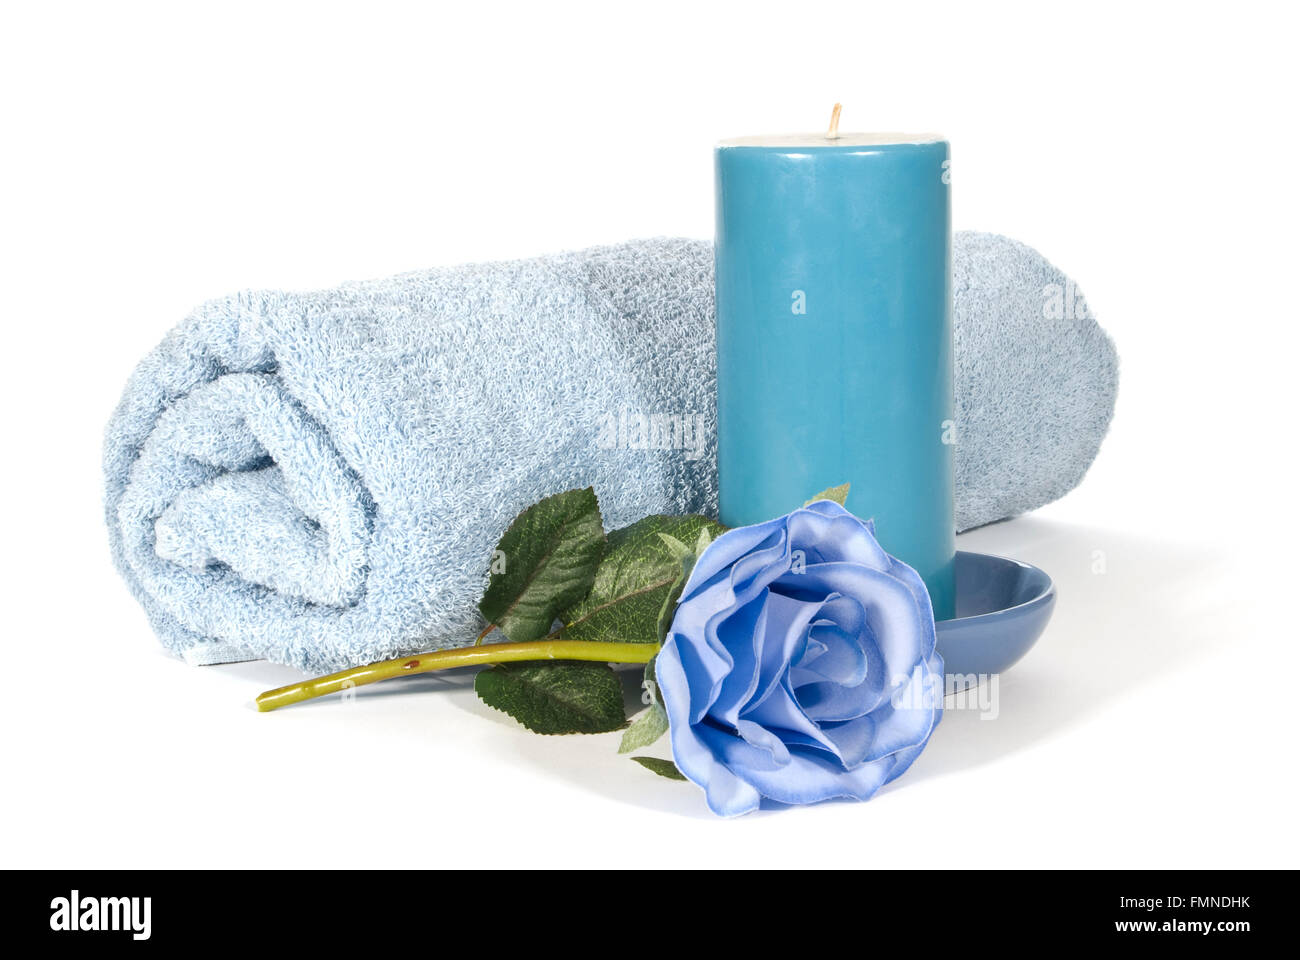 Relaxation in Blue - Stock Image